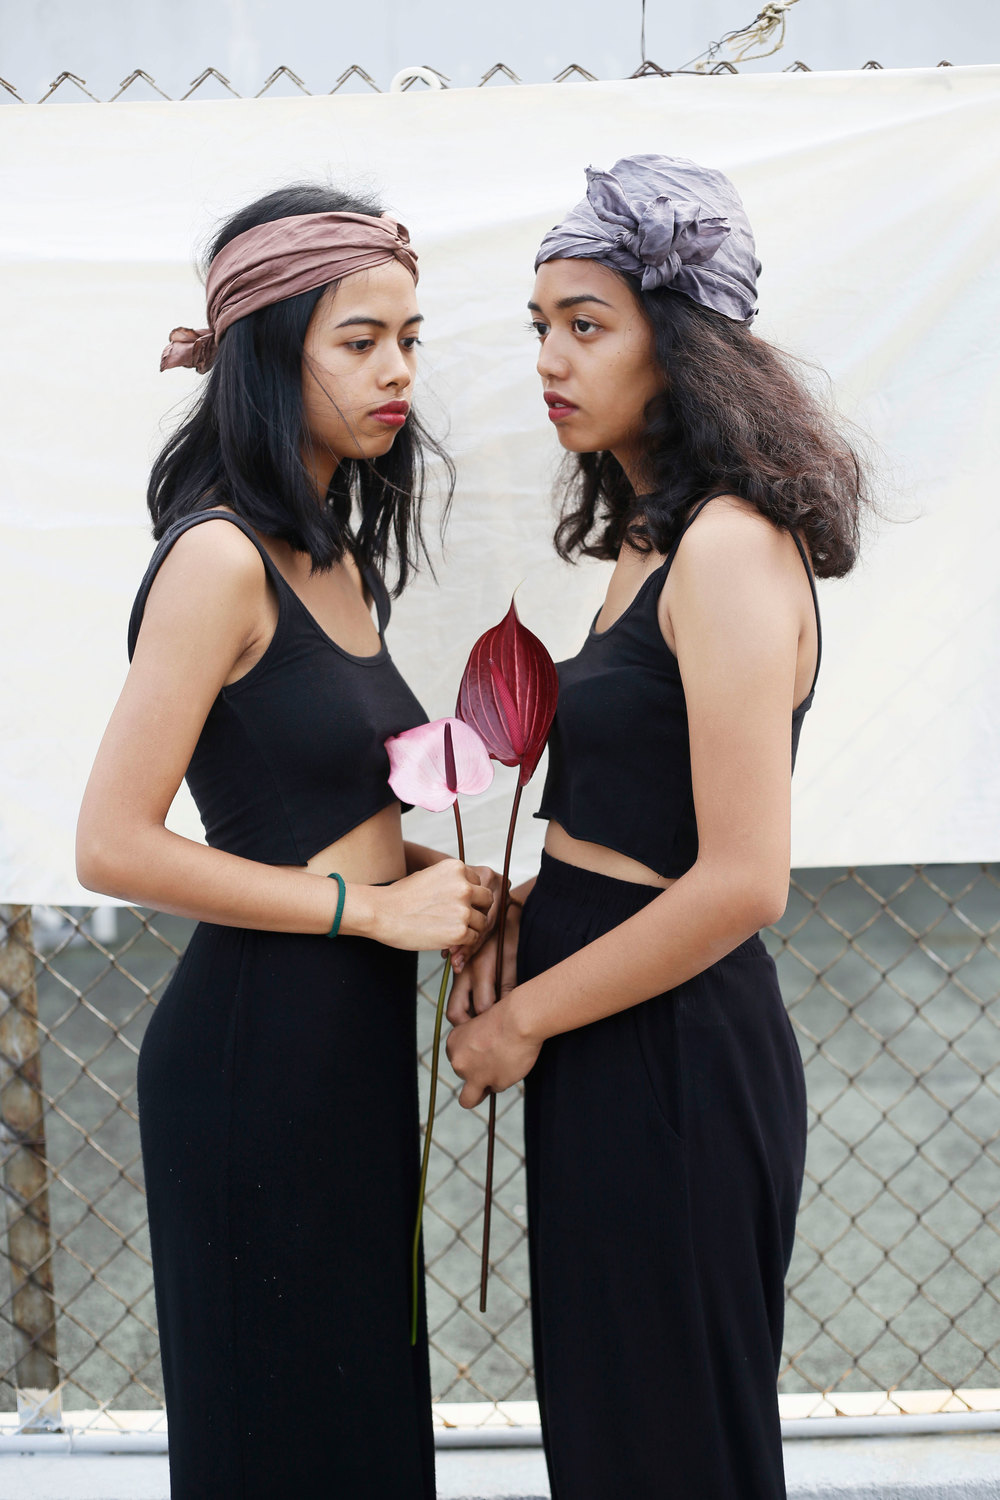 sisters_Facing_flower.jpg